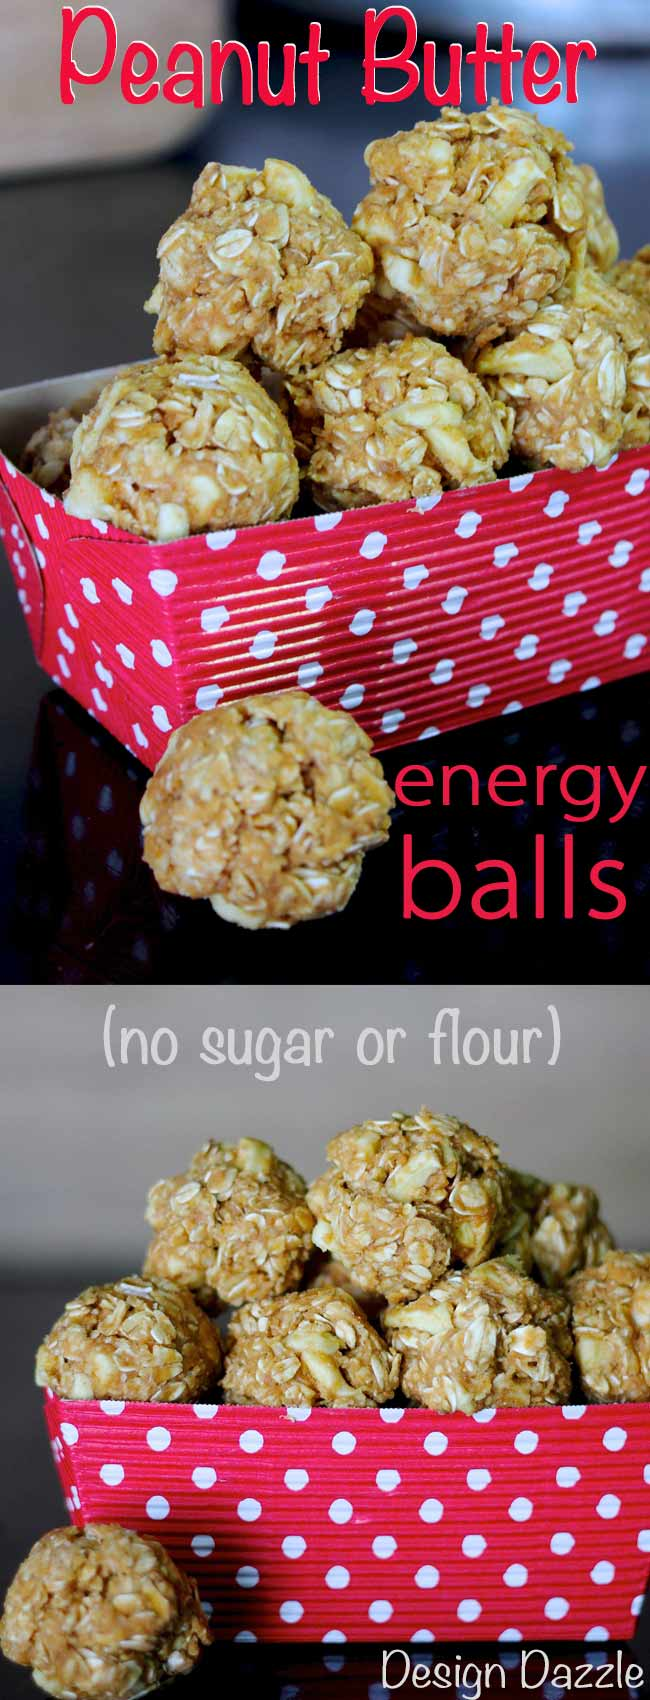 Peanut Butter Oatmeal Energy Balls are quite delicious. They are quick and easy to make! This no bake recipe has no flour or sugar, but full of protein. Perfect for healthy snacks on the go. #health #healthysnacks || Design Dazzle